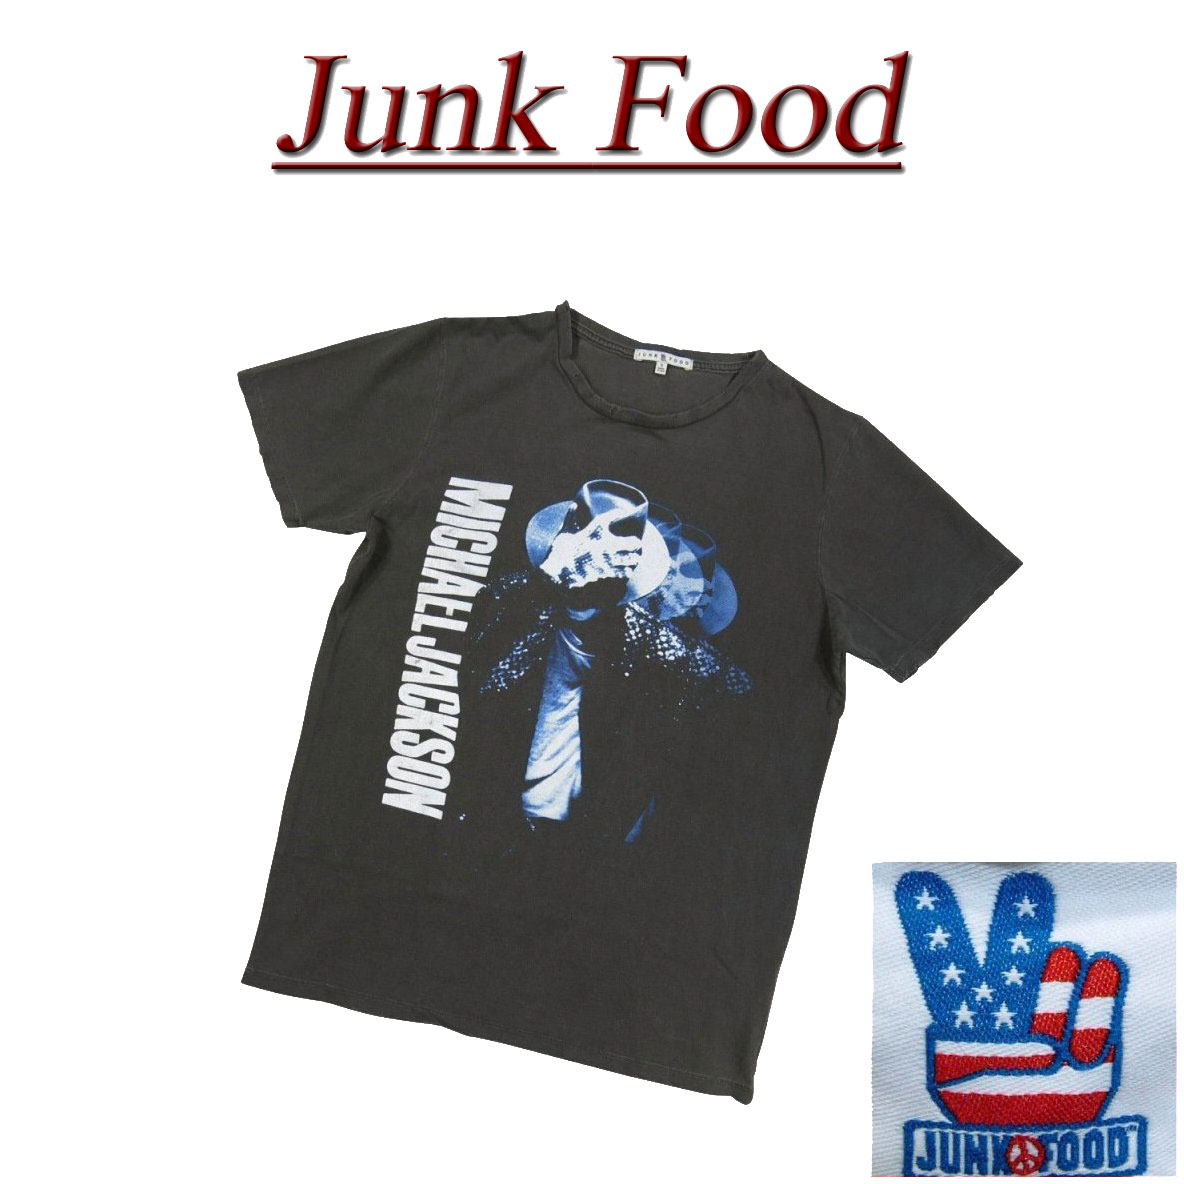 トップス, Tシャツ・カットソー US 4 ab881 JUNK FOOD USA MICHAEL JACKSON T MJ026-8010 JunkFood Made in USA smtb-kd